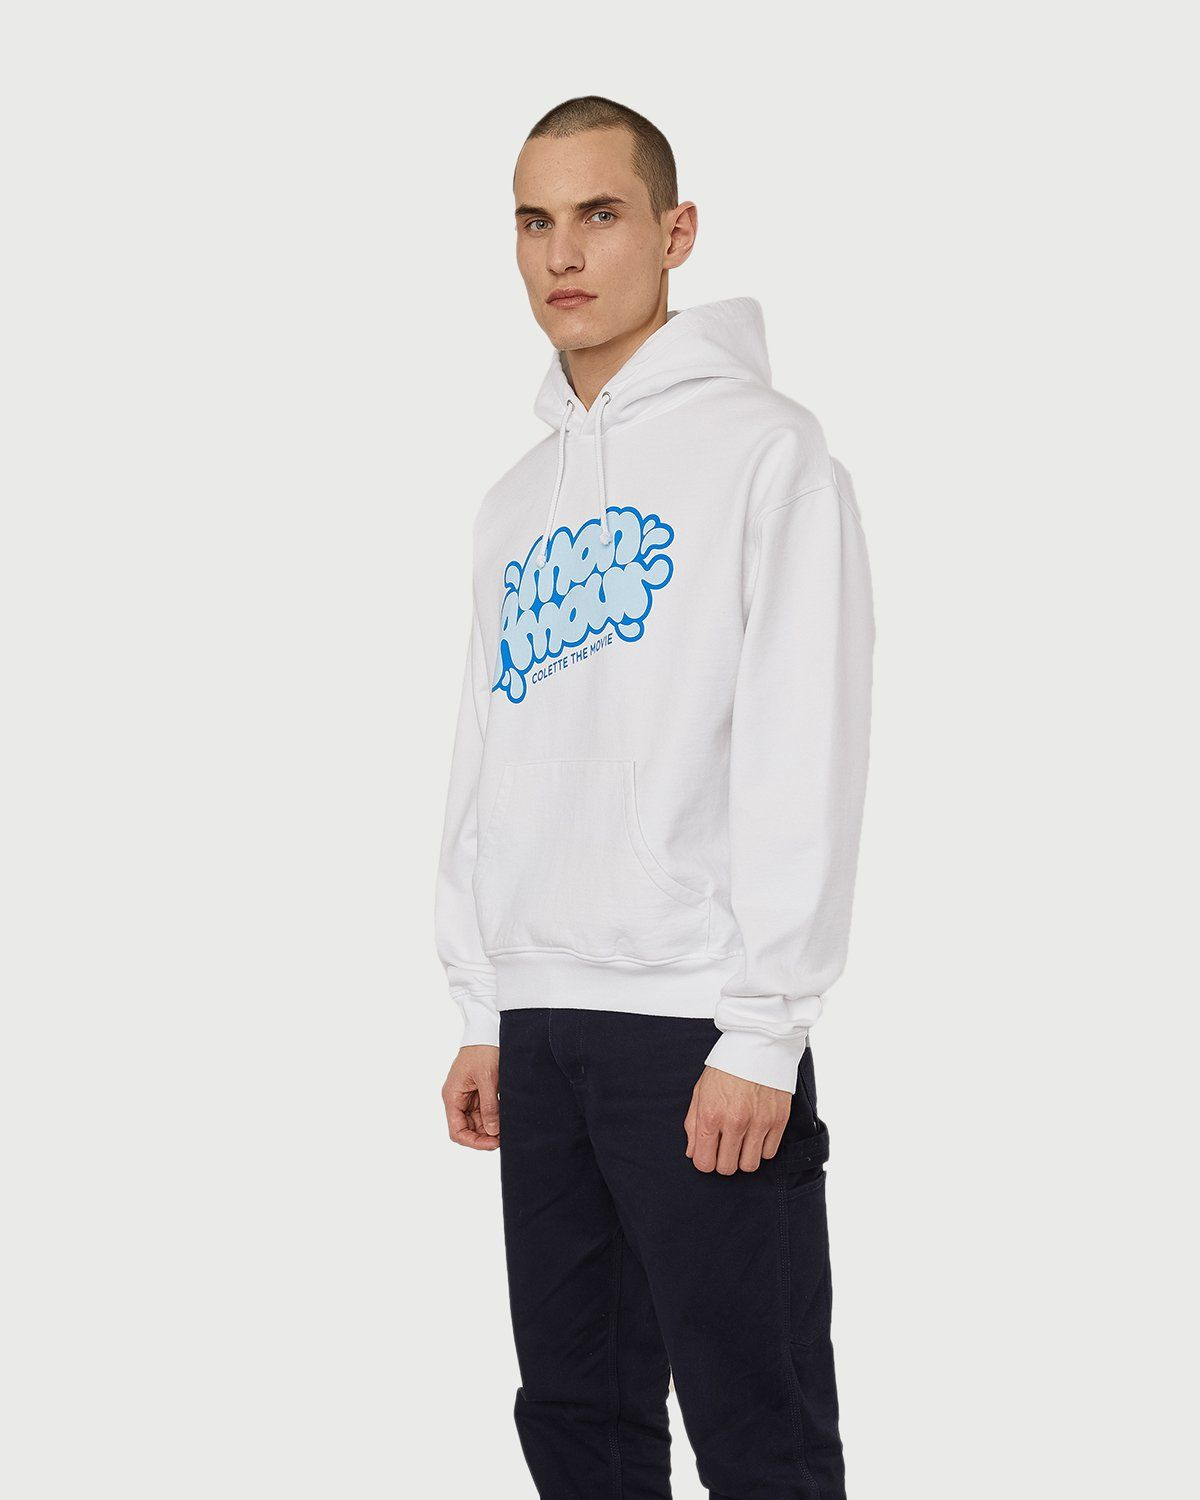 colette Mon Amour - Water Bar Hoodie White - Image 3